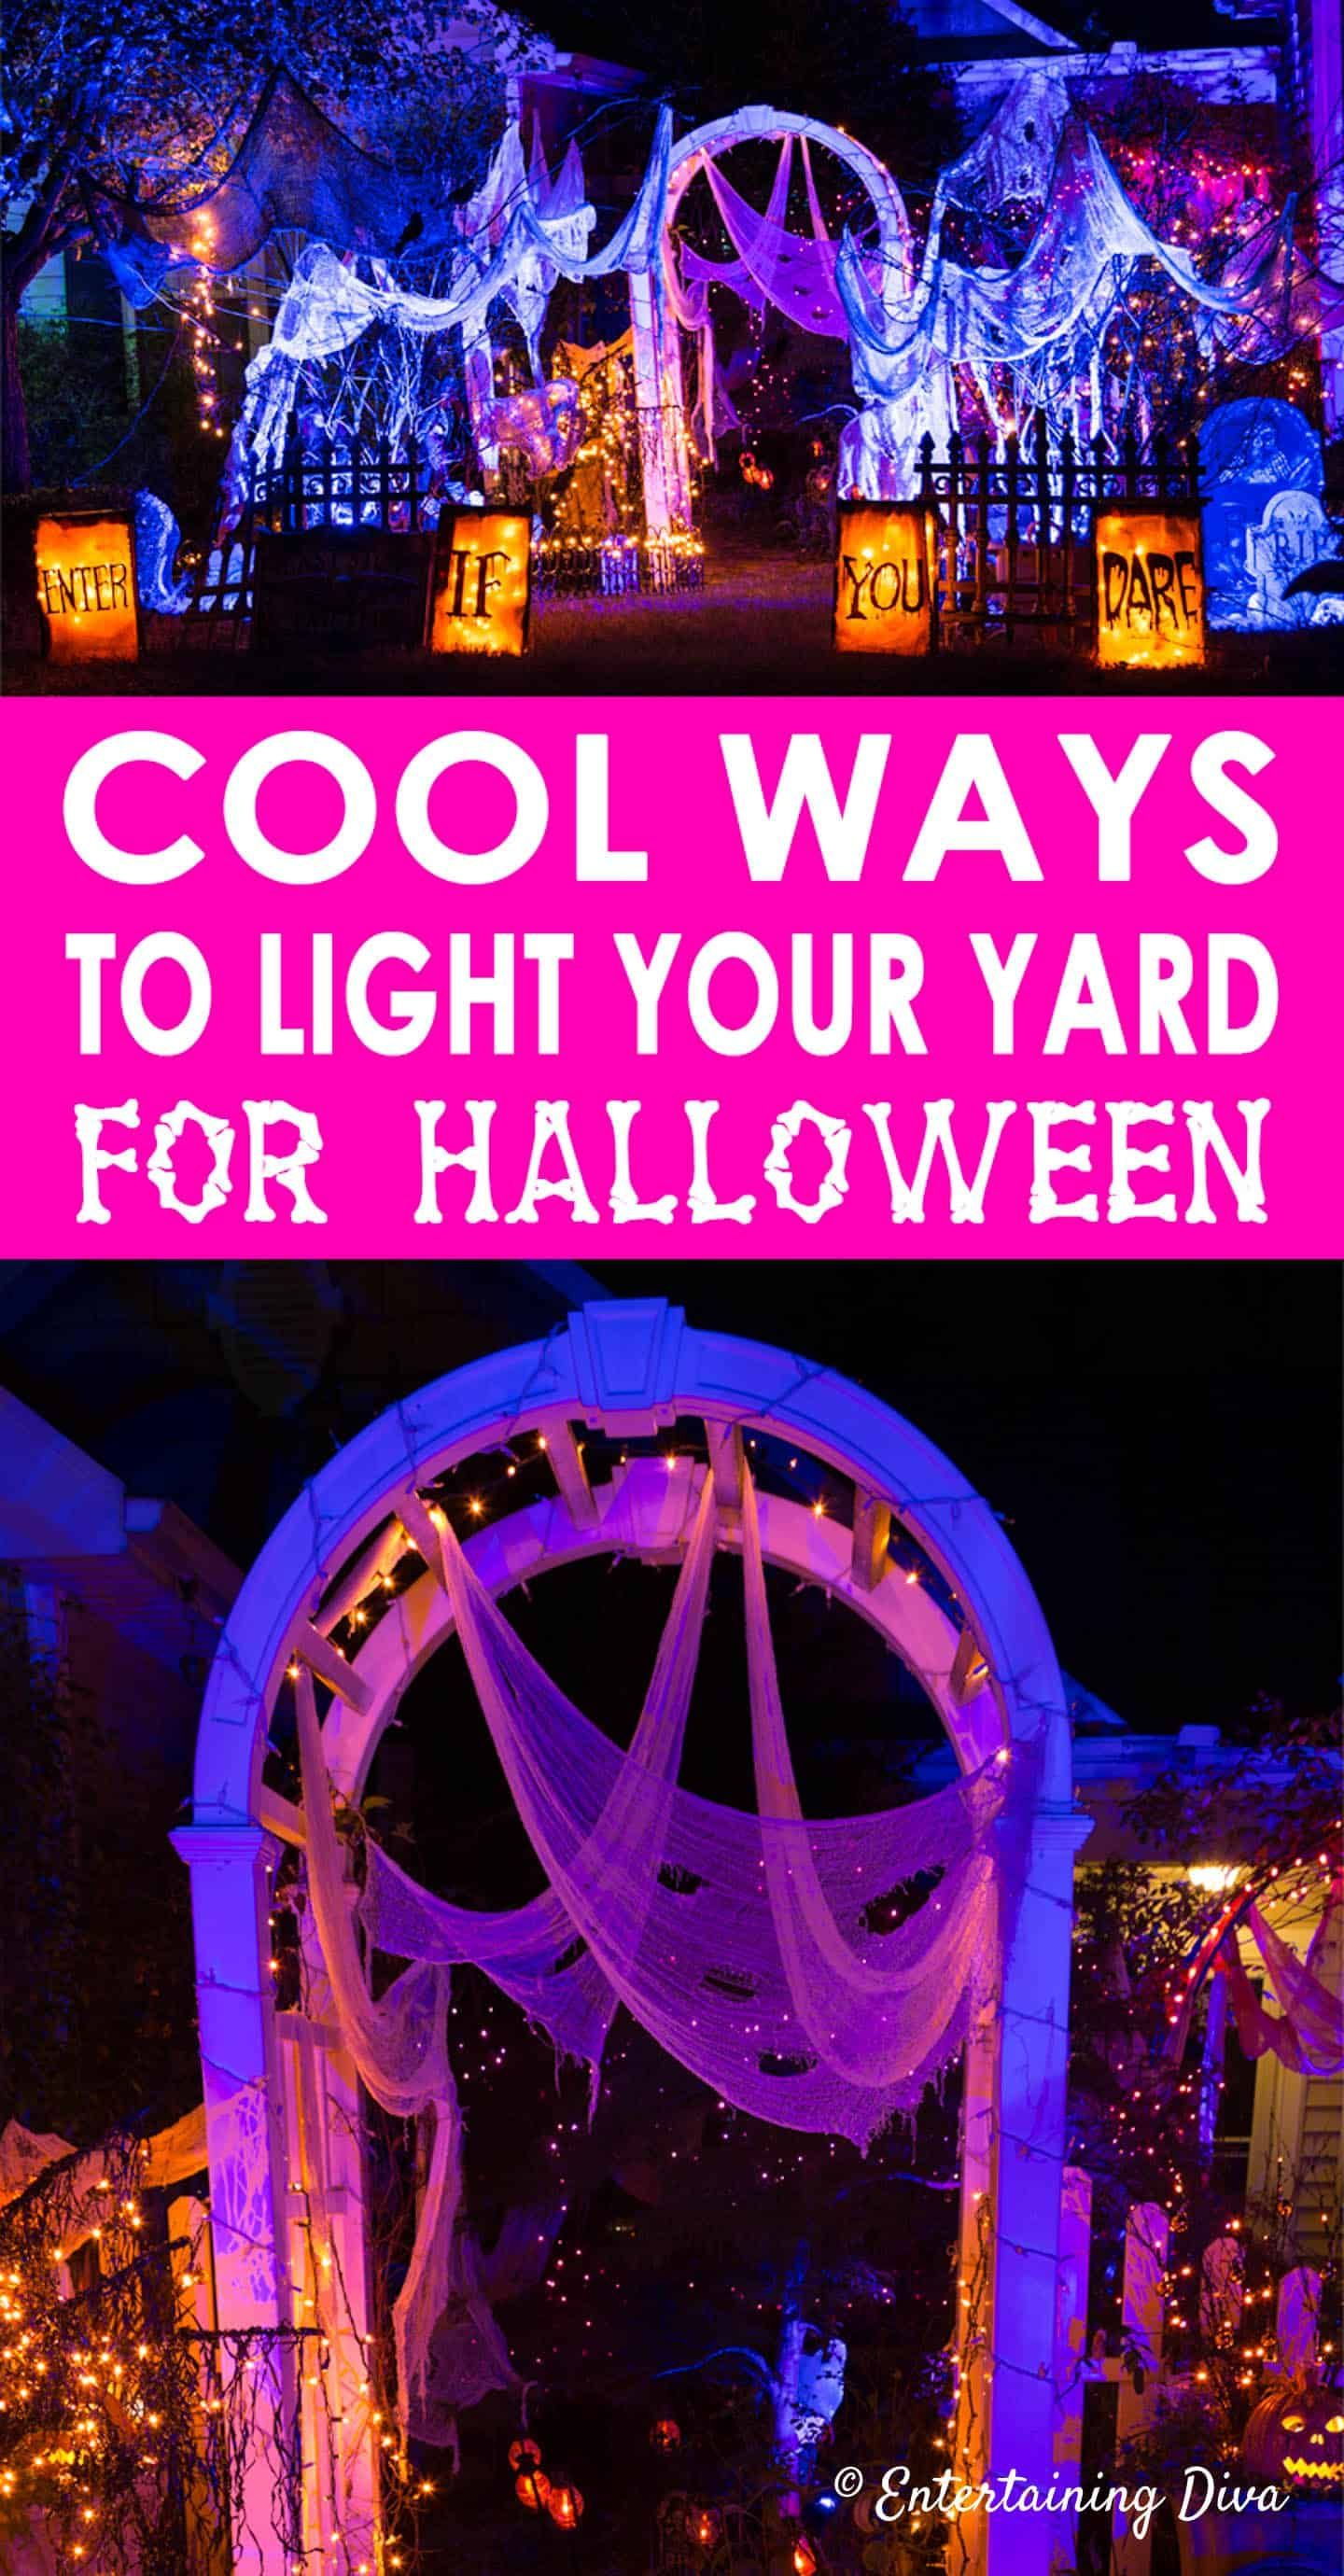 Halloween Outdoor Lighting Ideas: 18 Spooky Ways To Light Your Yard – Entertaining Diva @ From House To Home